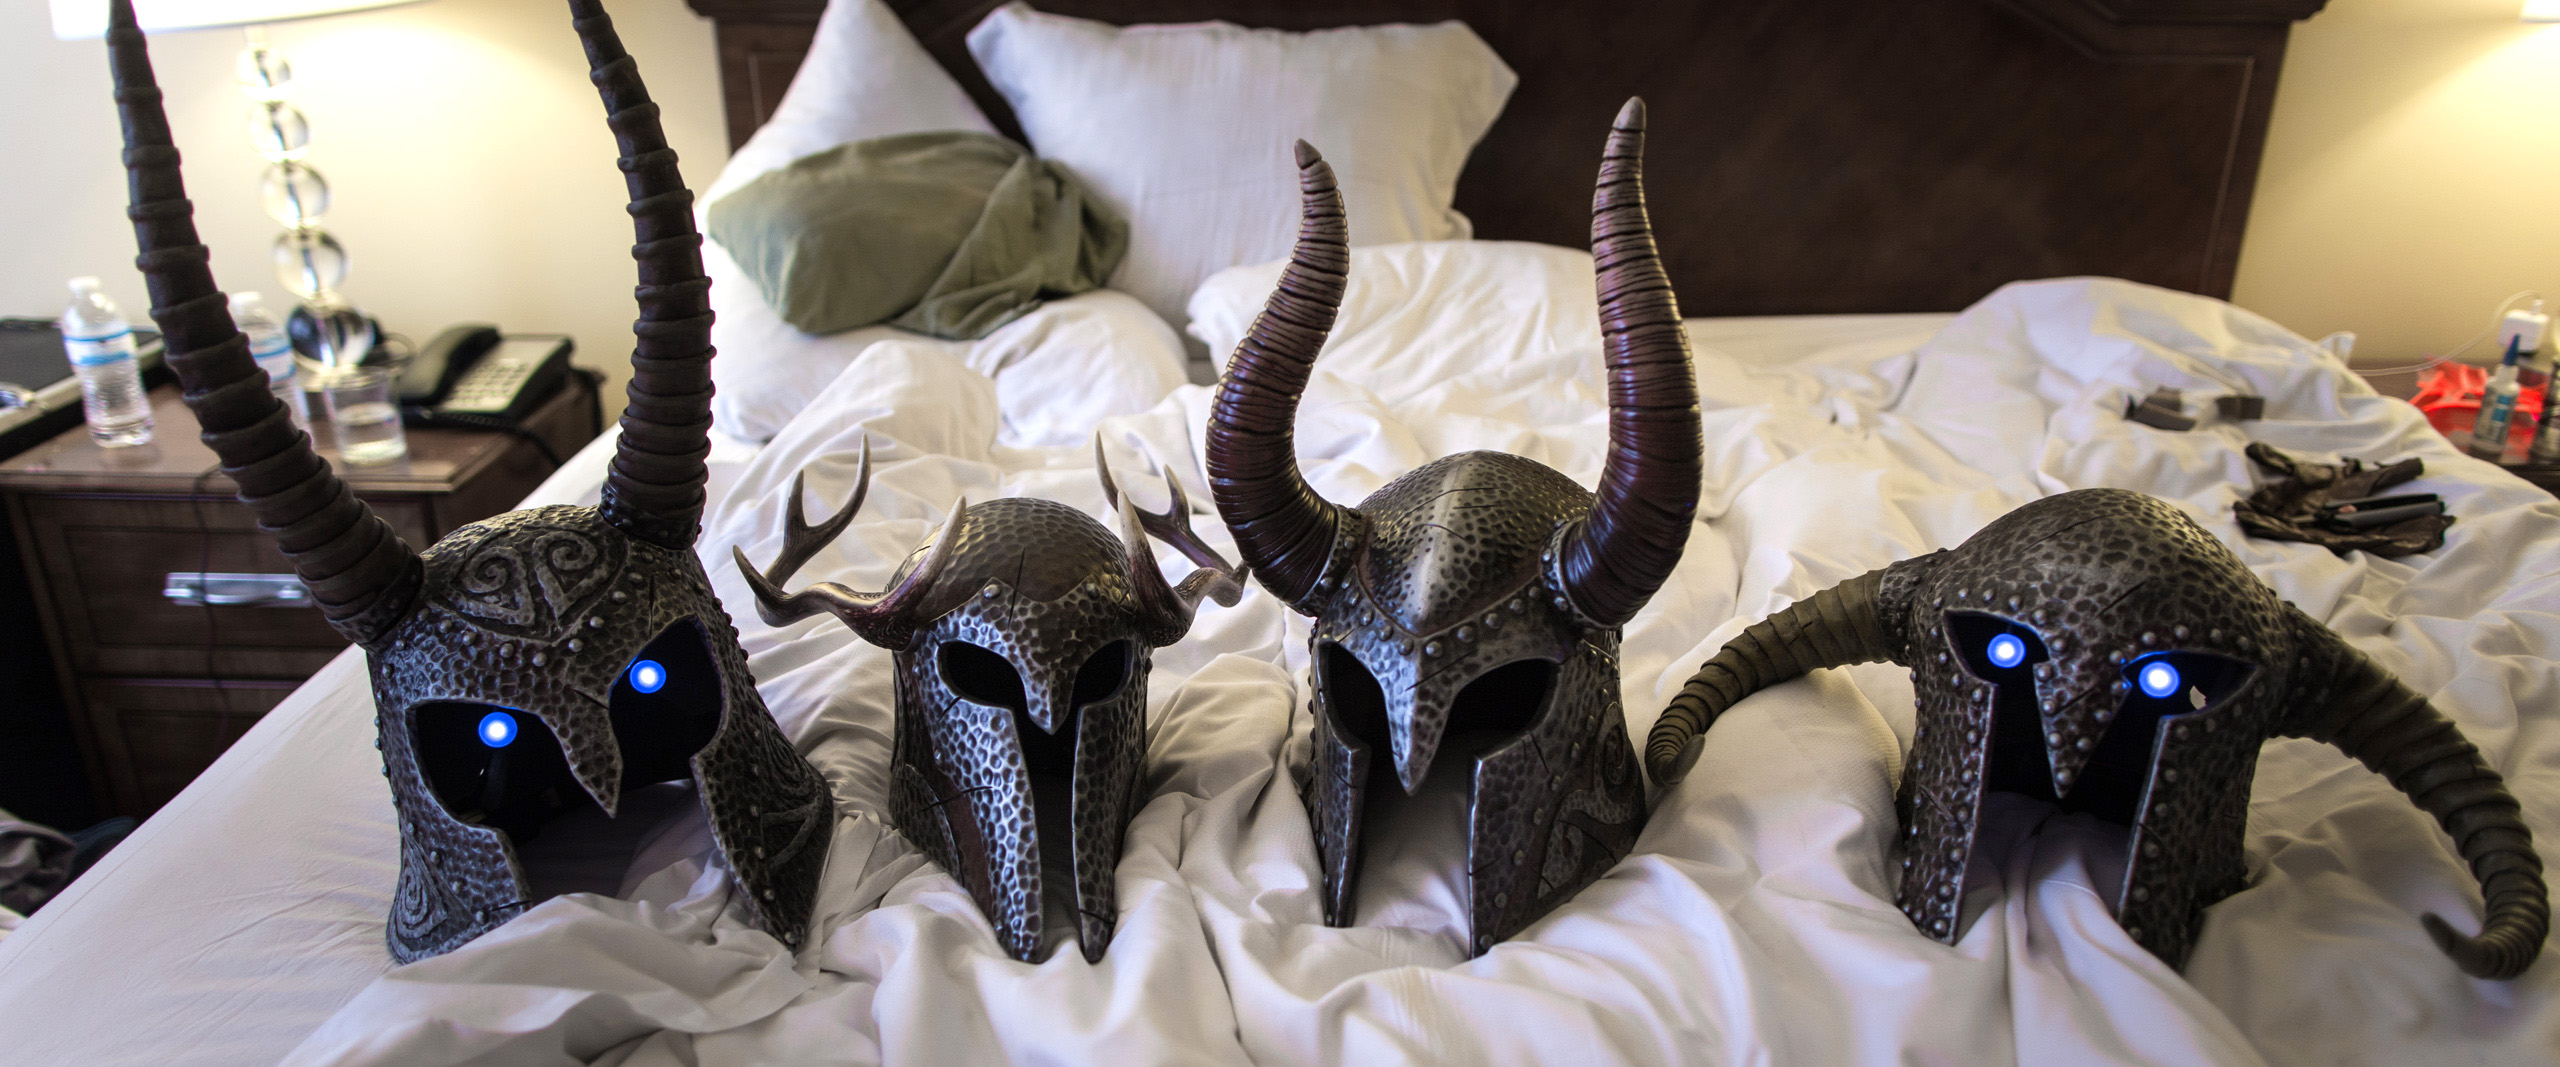 457445 Draugr Deathlords Dragoncon on red carpet props